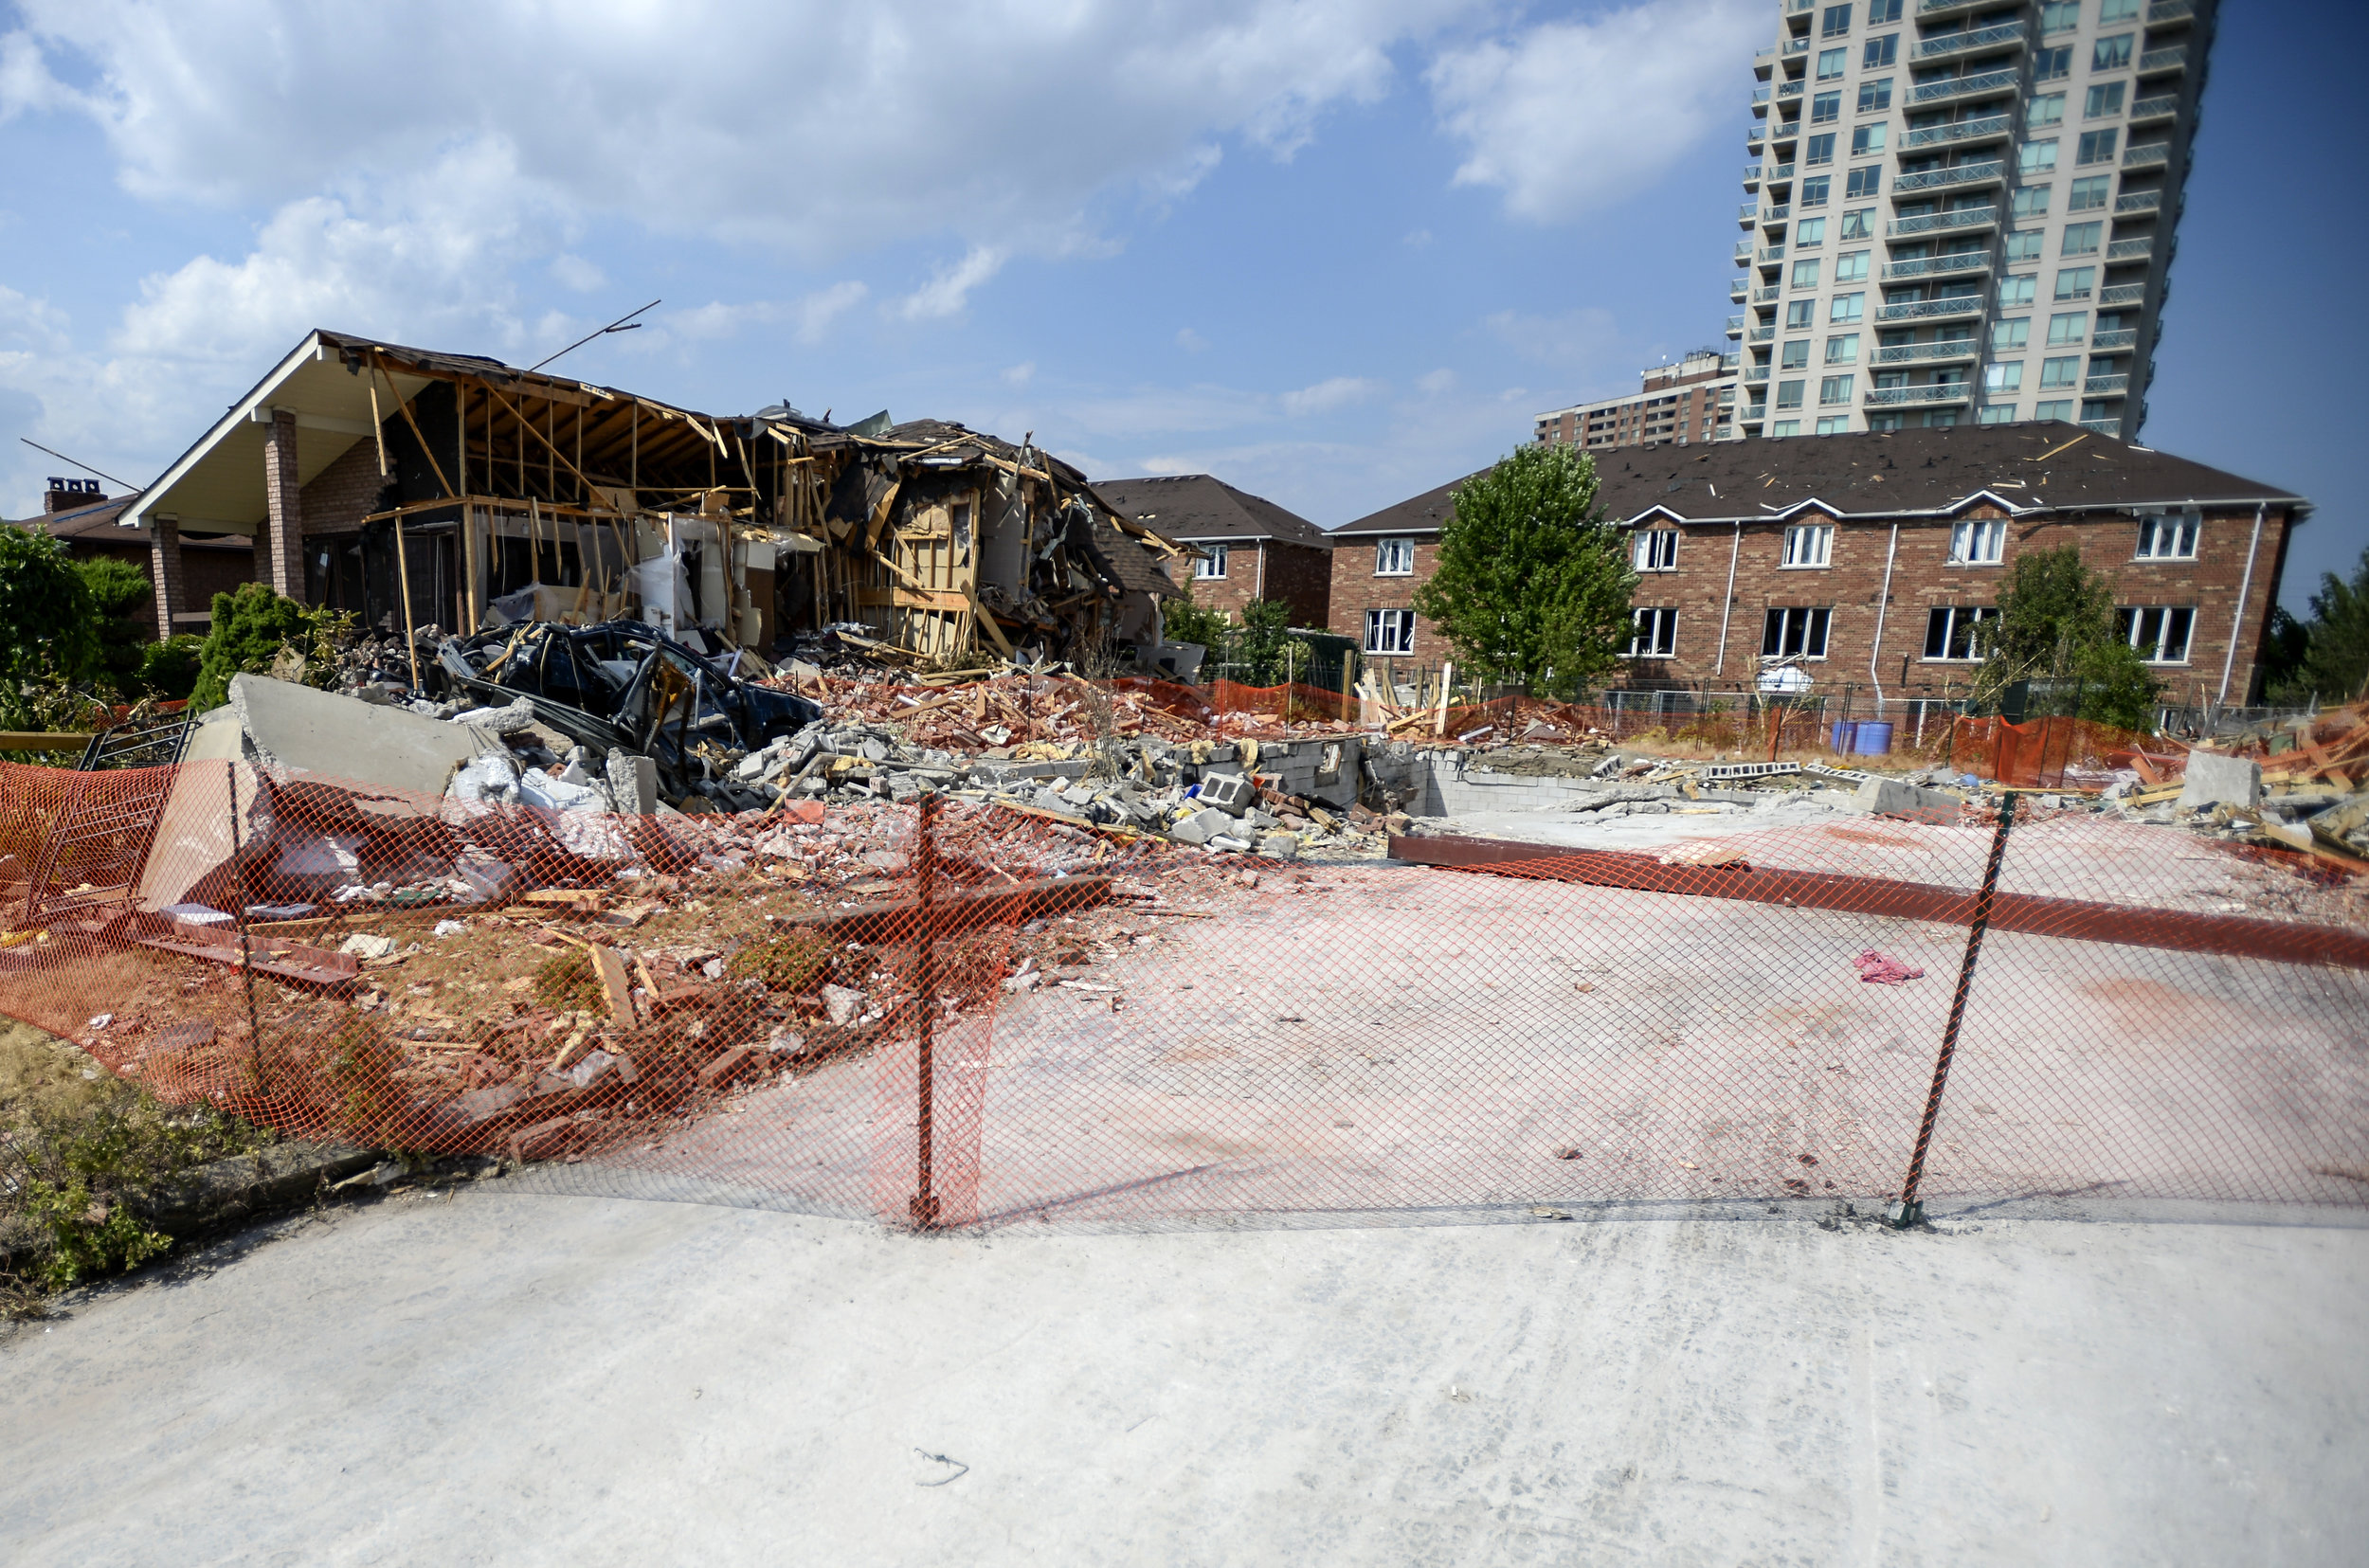 Ground zero. The home that exploded early last week is reduced to a hole in the ground. Mayor Bonnie Crombie and Fire Chief Tim Beckett give a tour of the explosion site on Hickory Dr. on July 6, 2016.